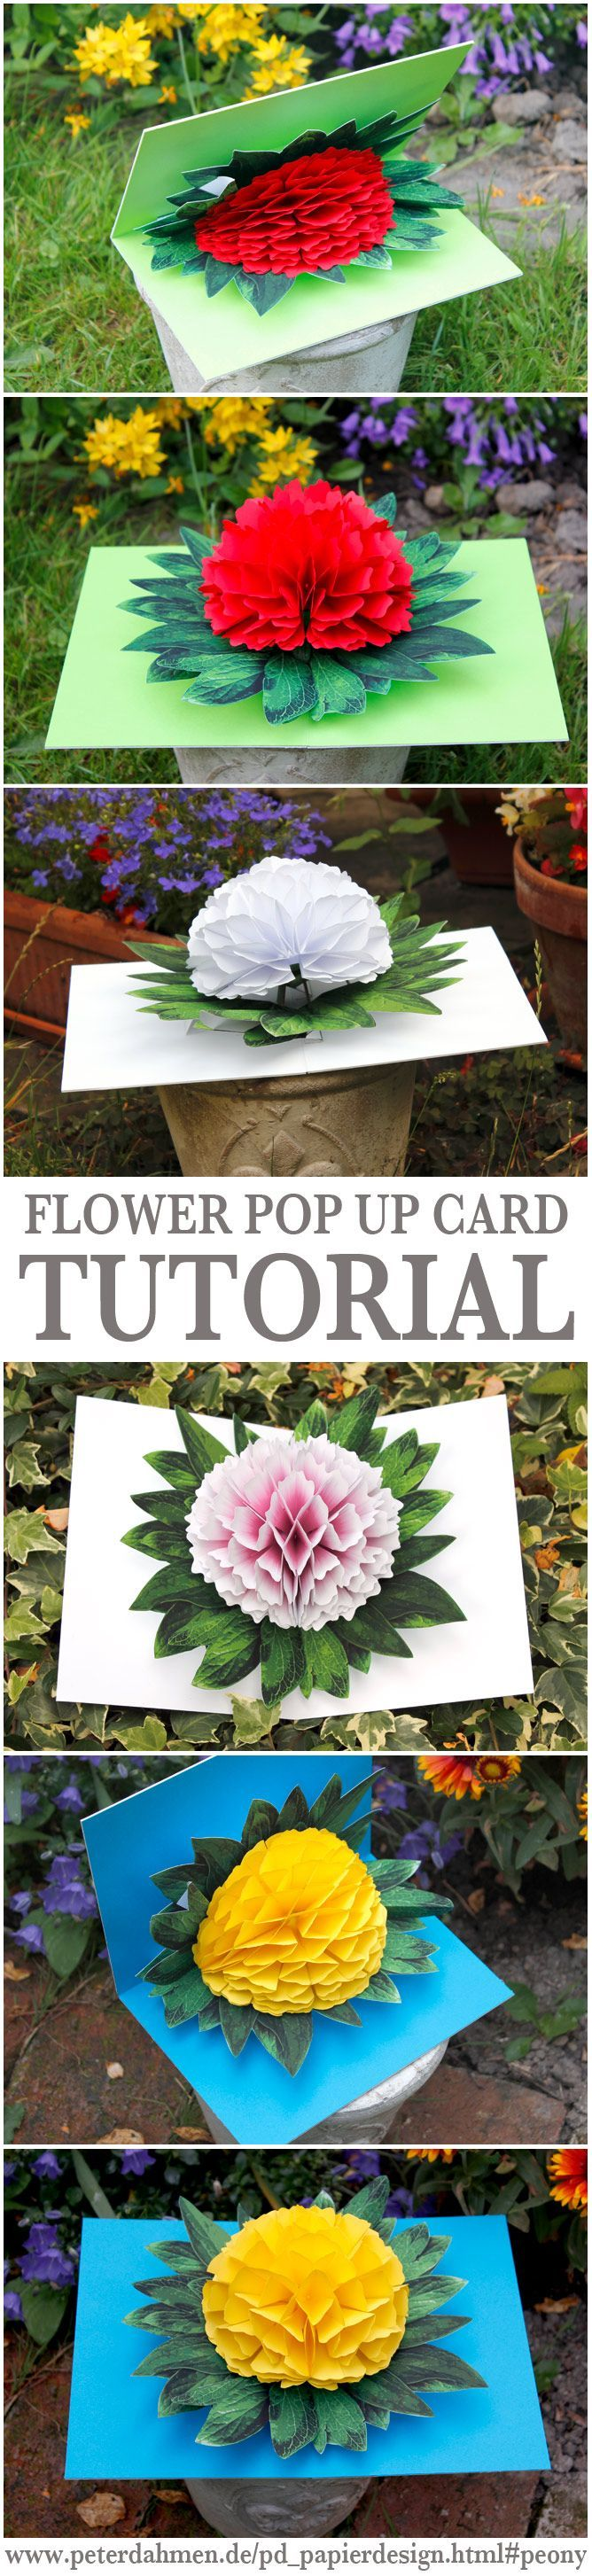 25+ best ideas about Pop up card templates on Pinterest ...